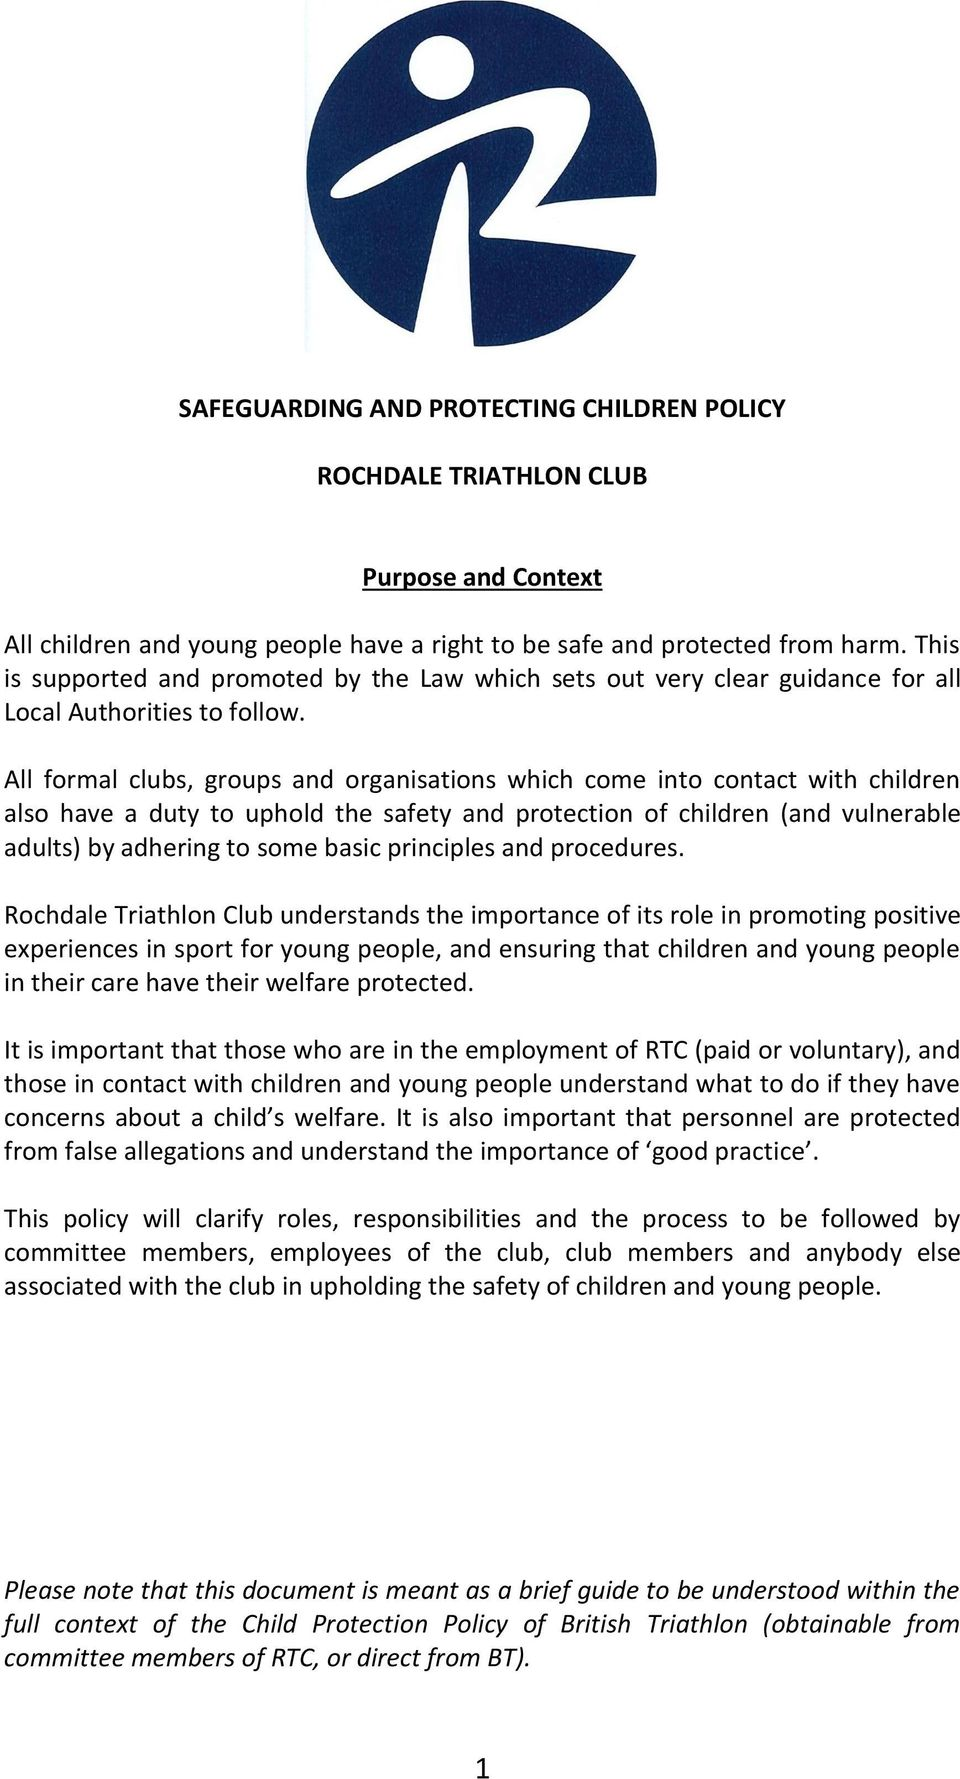 All formal clubs, groups and organisations which come into contact with children also have a duty to uphold the safety and protection of children (and vulnerable adults) by adhering to some basic